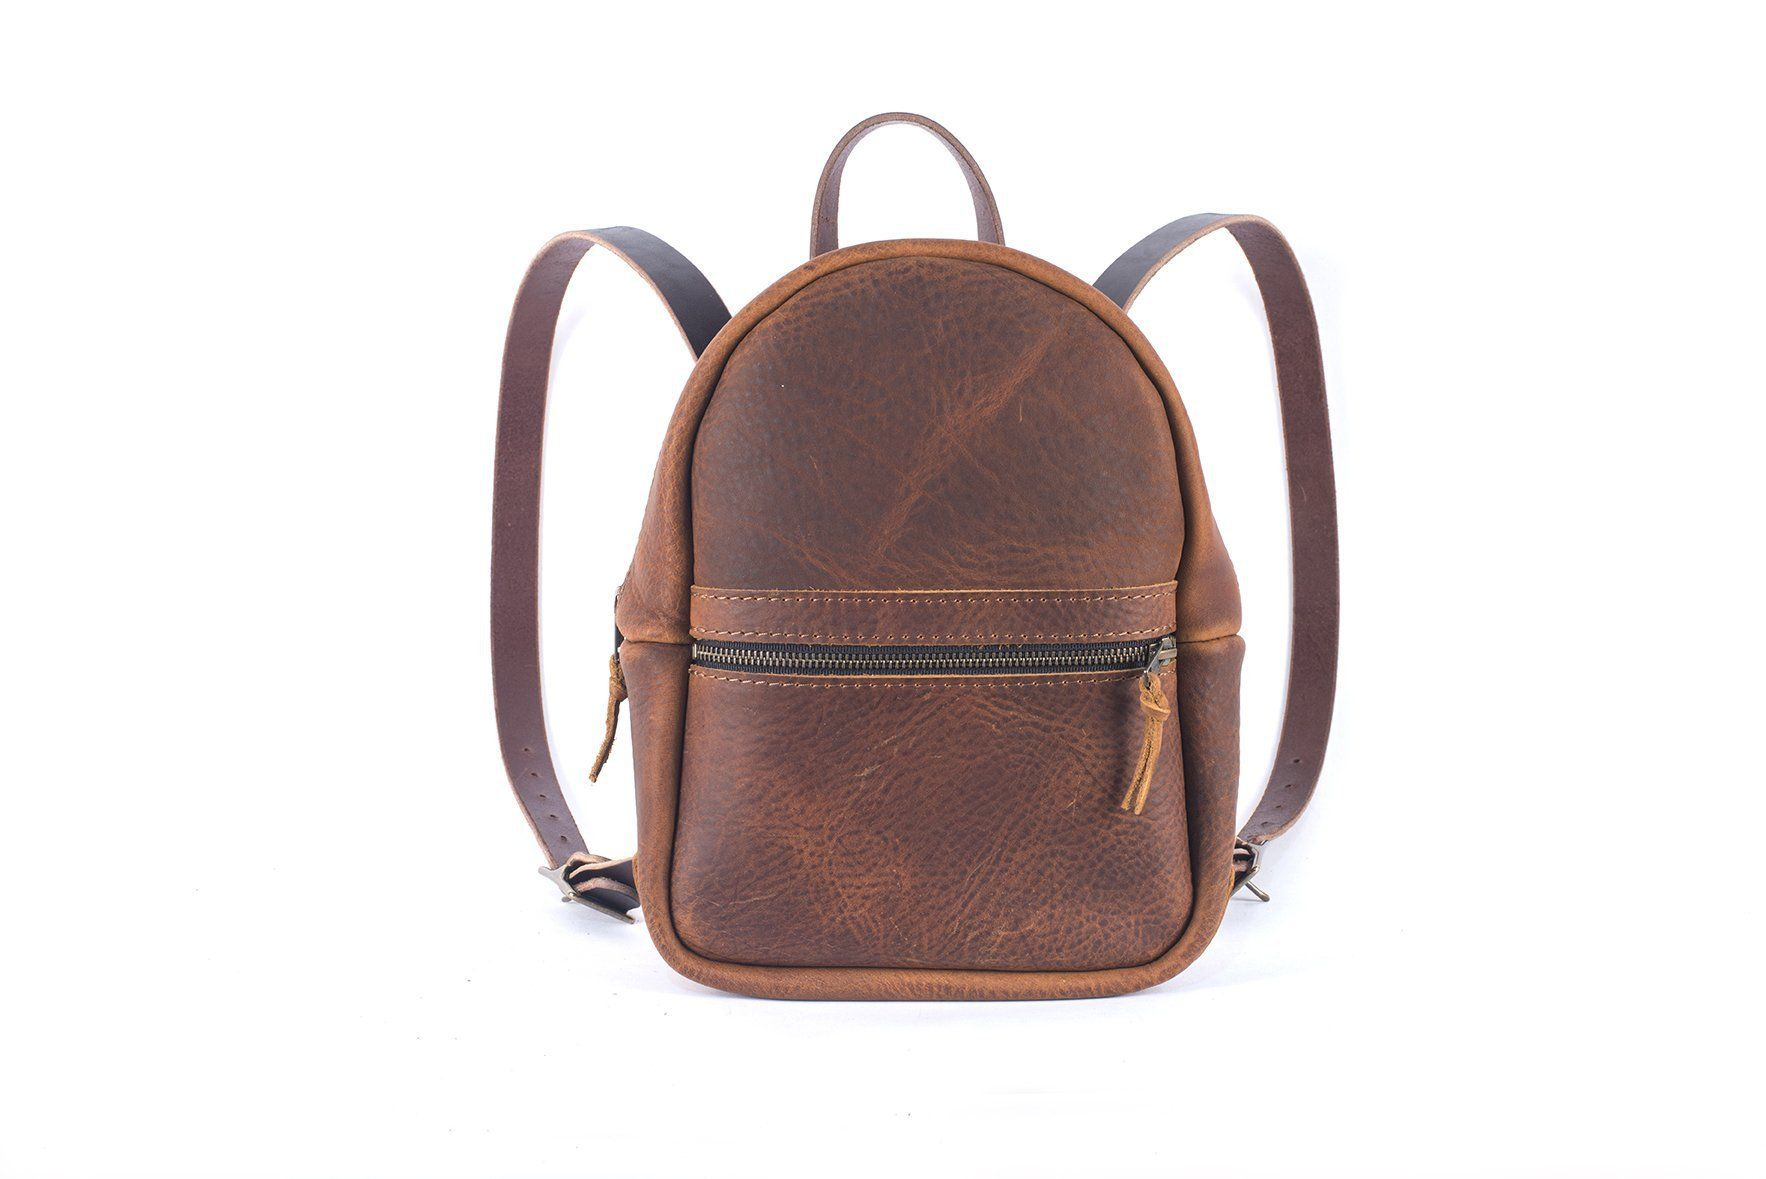 CLASSIC ZIPPERED SMALL LEATHER BACKPACK PURSE